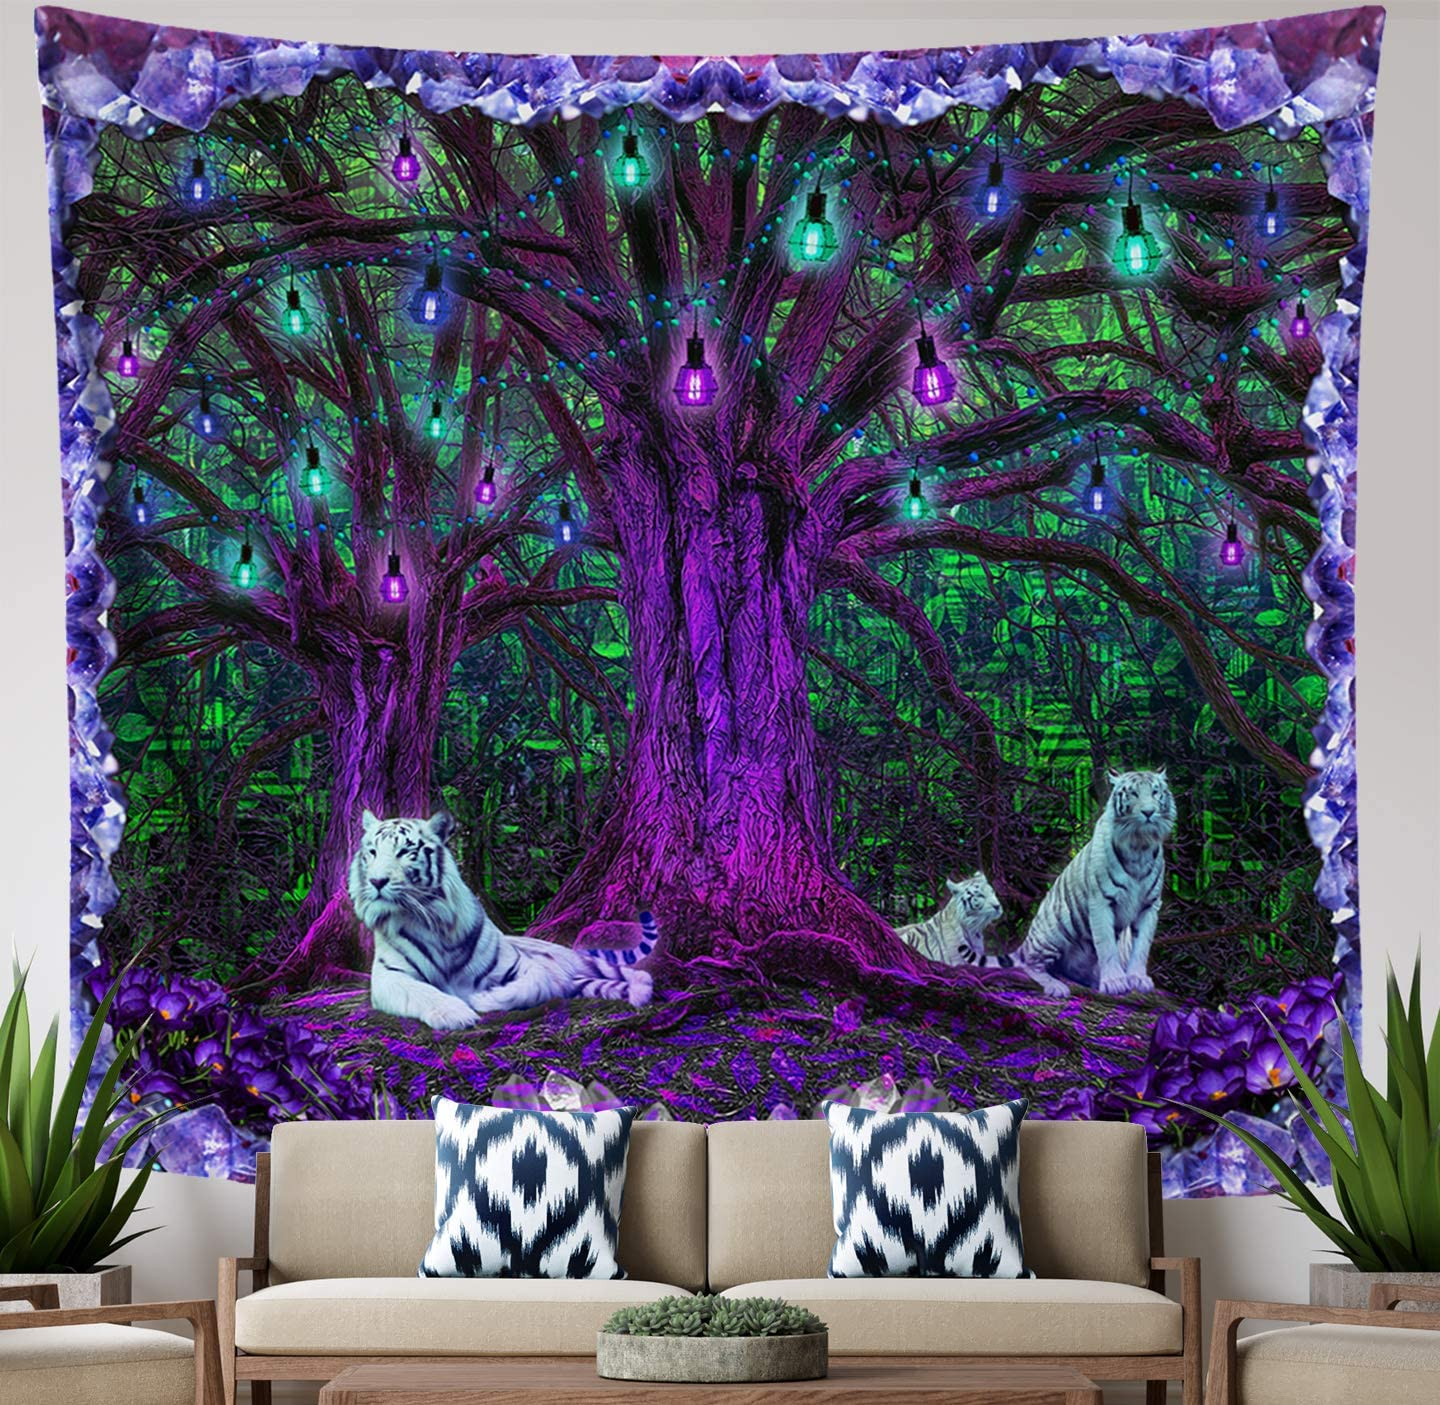 Lucid Eye Studios Tiger Tree Psychedelic Tapestry- Green Matrix Wall Hanging- Amethyst Room Decor- Nature Forest Tapestry- Tree of Life Leaves Pattern- Dorm Wall Art (58 x 51 inches)